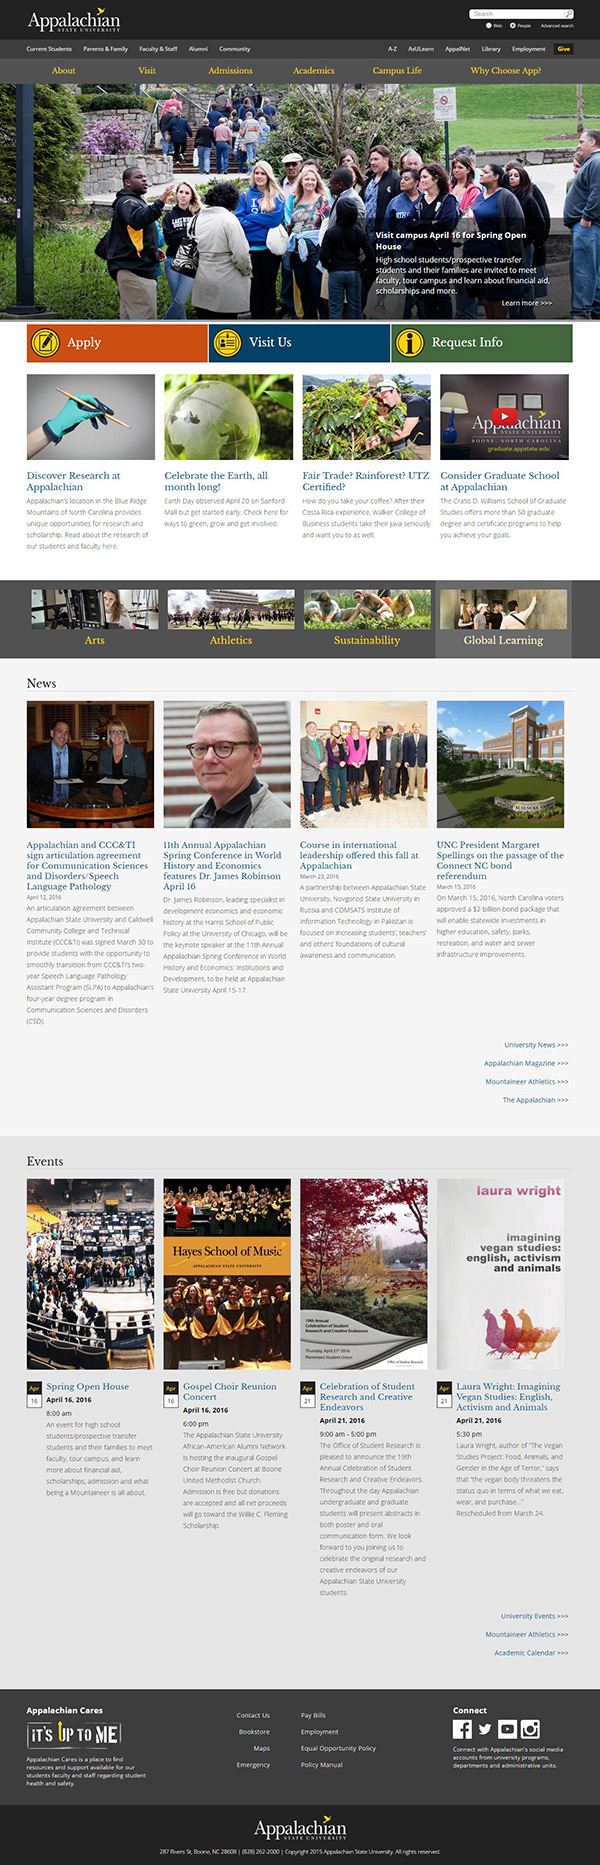 Appalachian State Homepage Redesign